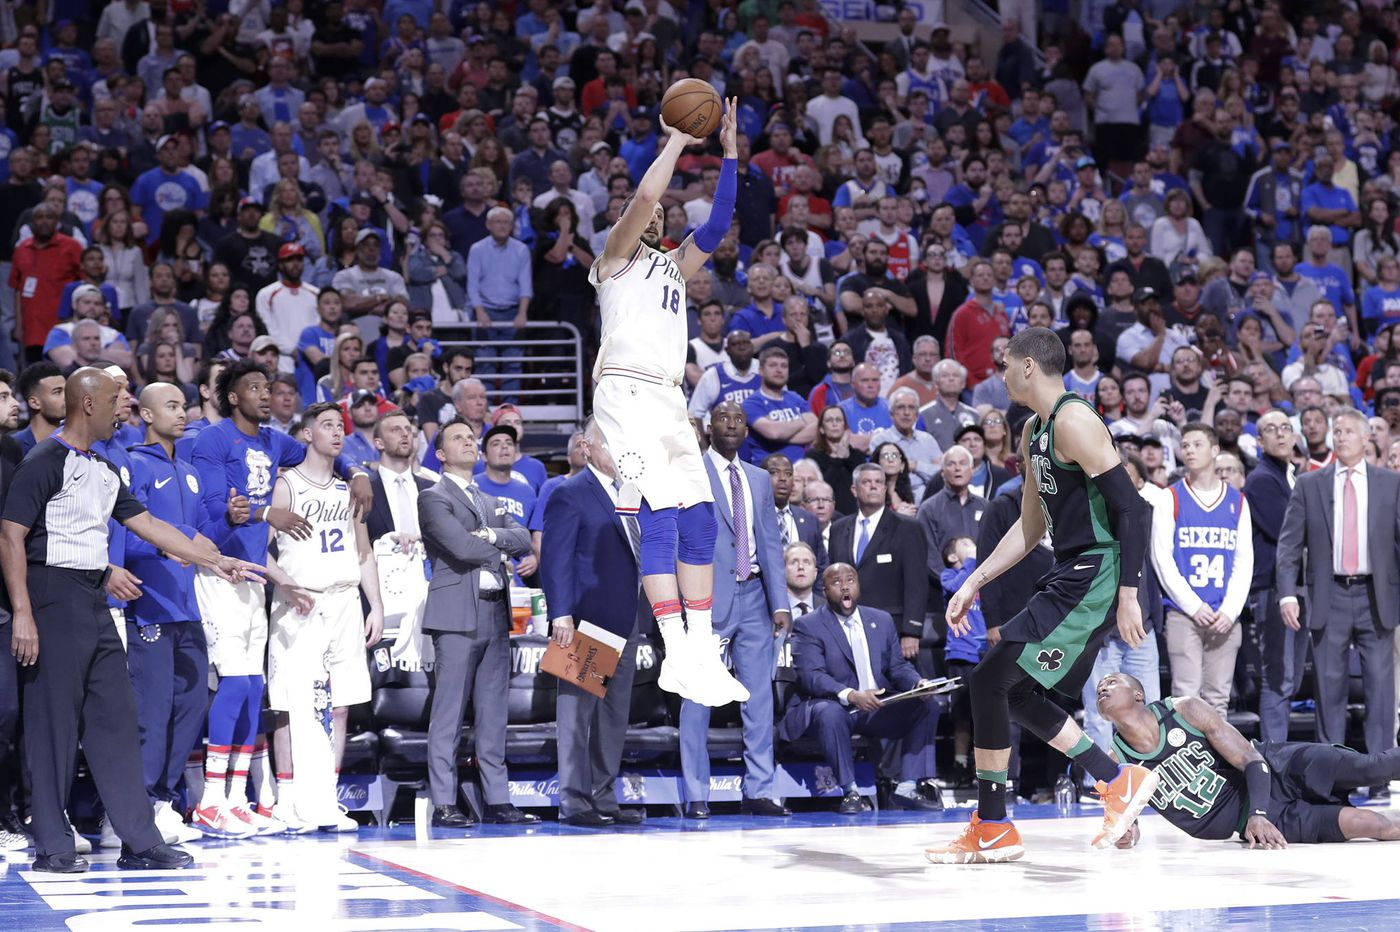 Remembering the Sixers' 2018 playoff run as series with Nets approaches